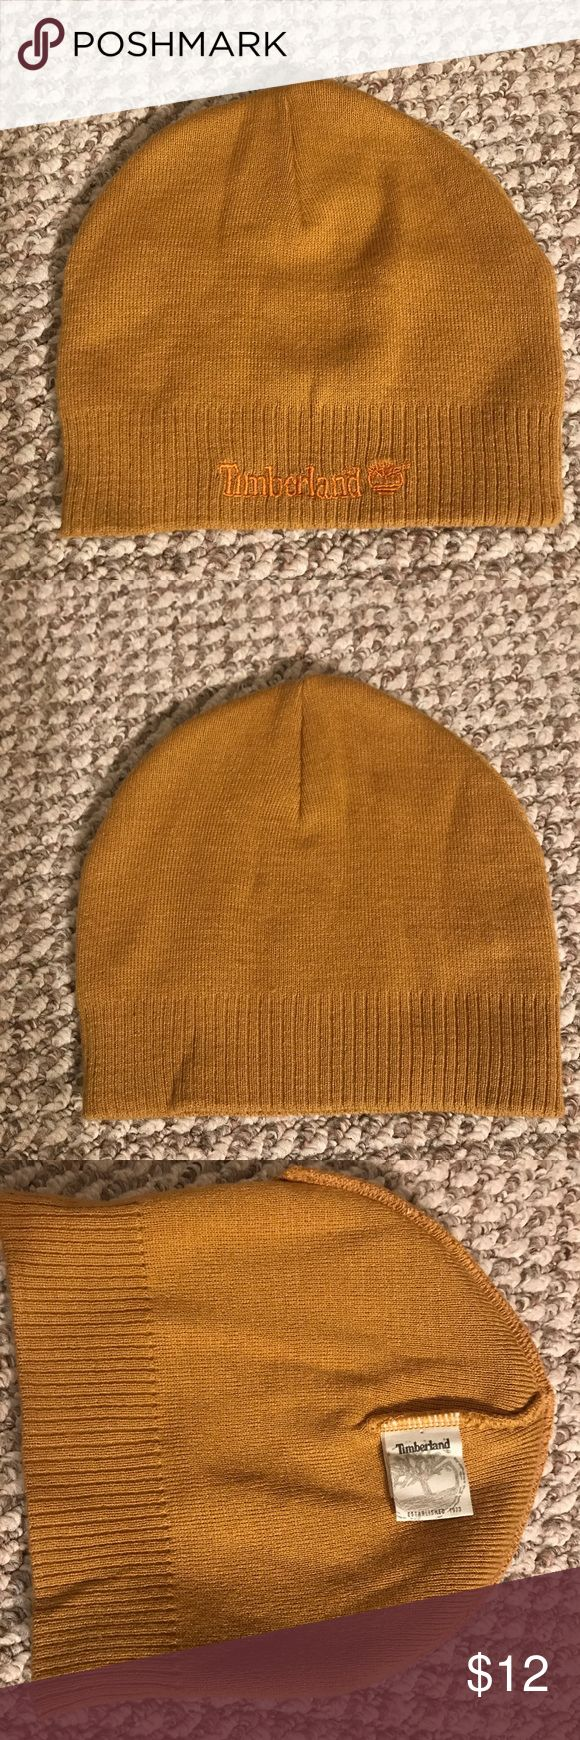 Authentic Timberland Hat Authentic Tan Timberland Hat. Brand new. Never used. Unisex Timberland Accessories Hats